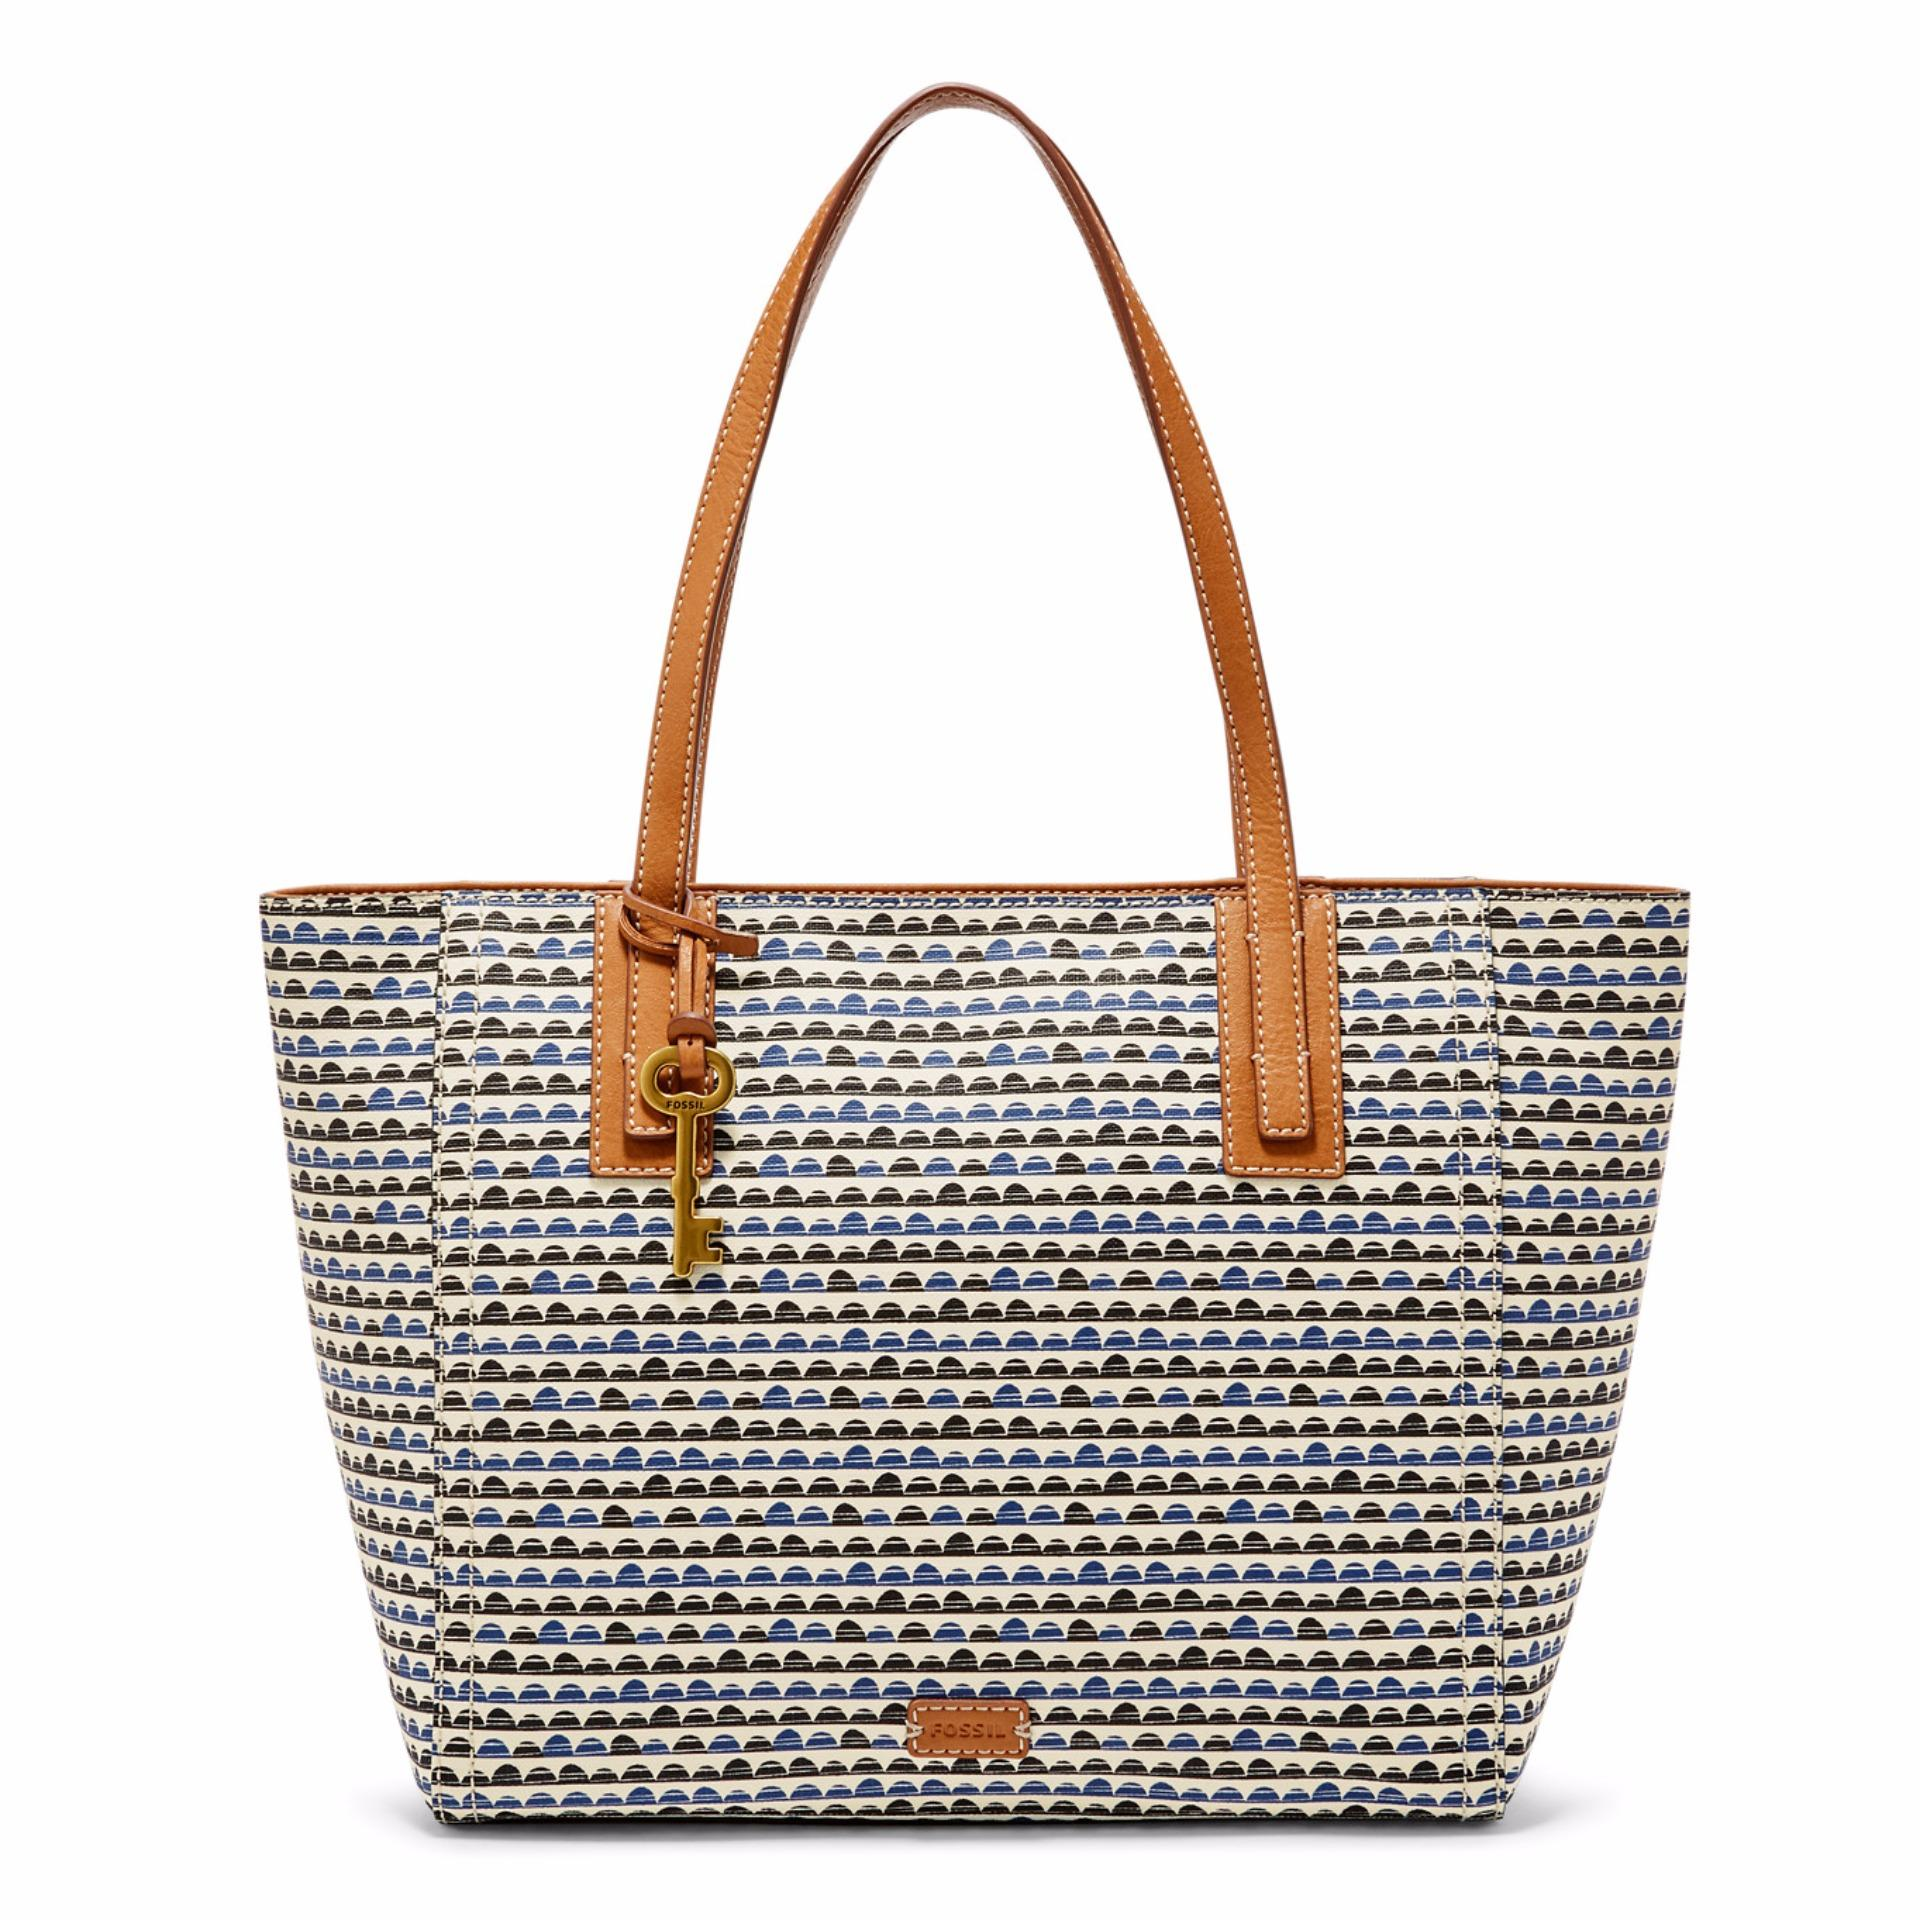 Jual Fossil Emma Tote Blue Print Zb 7137469 Online